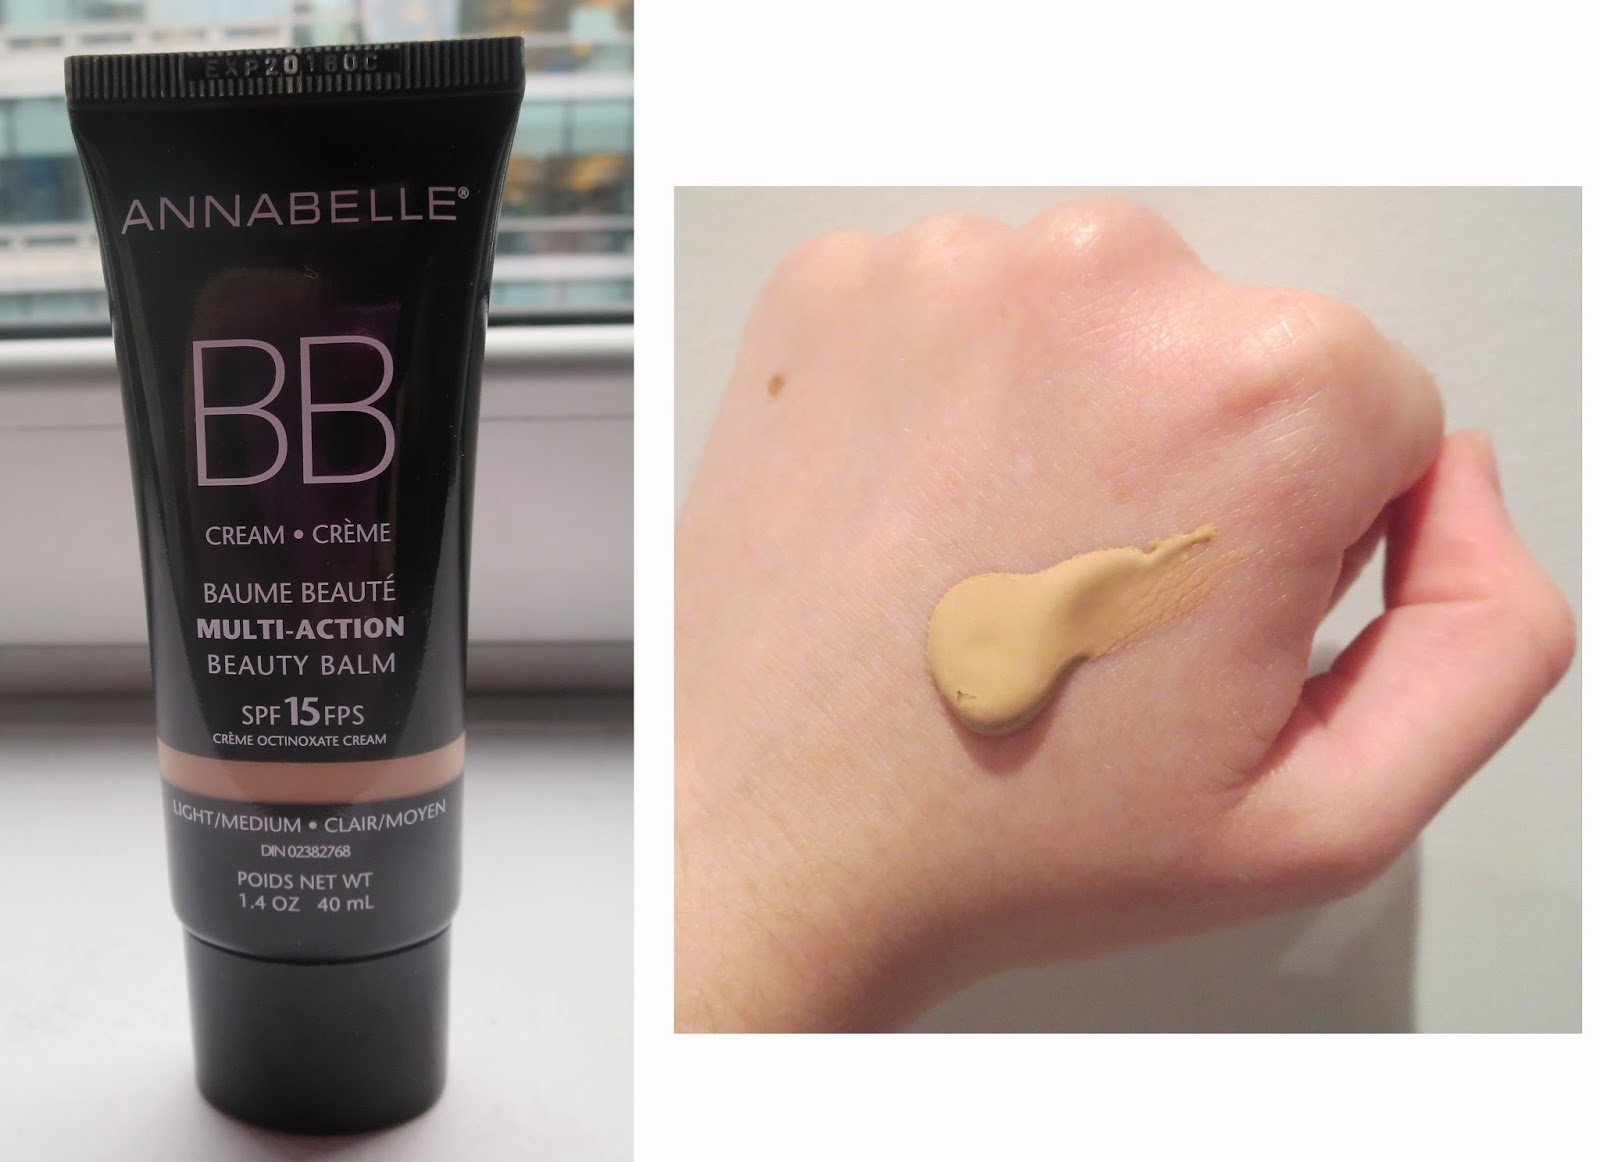 a picture of Annabelle Cosmetics BB cream